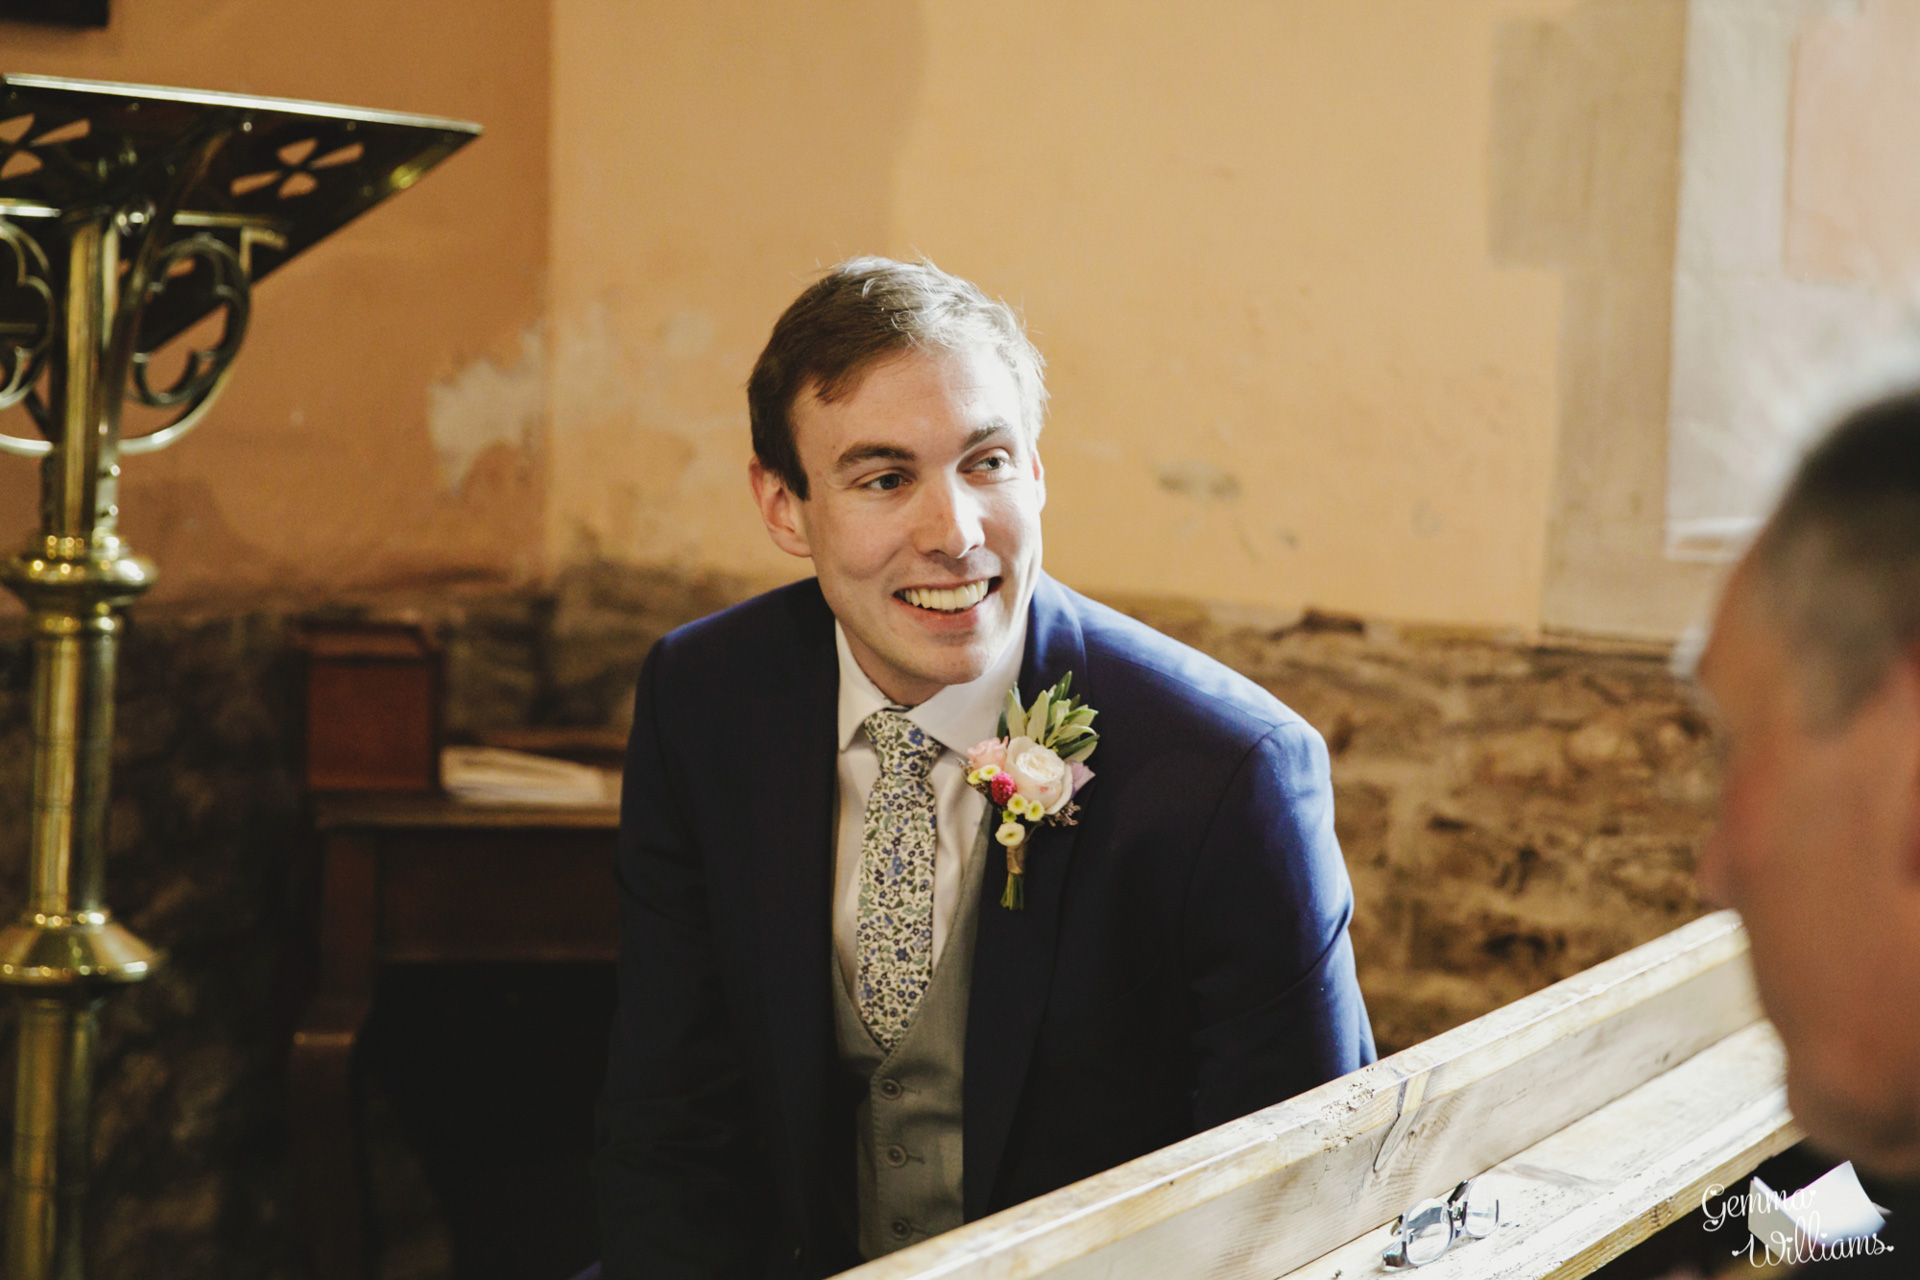 HaybarnWedding_GemmaWilliamsPhoto033.jpg